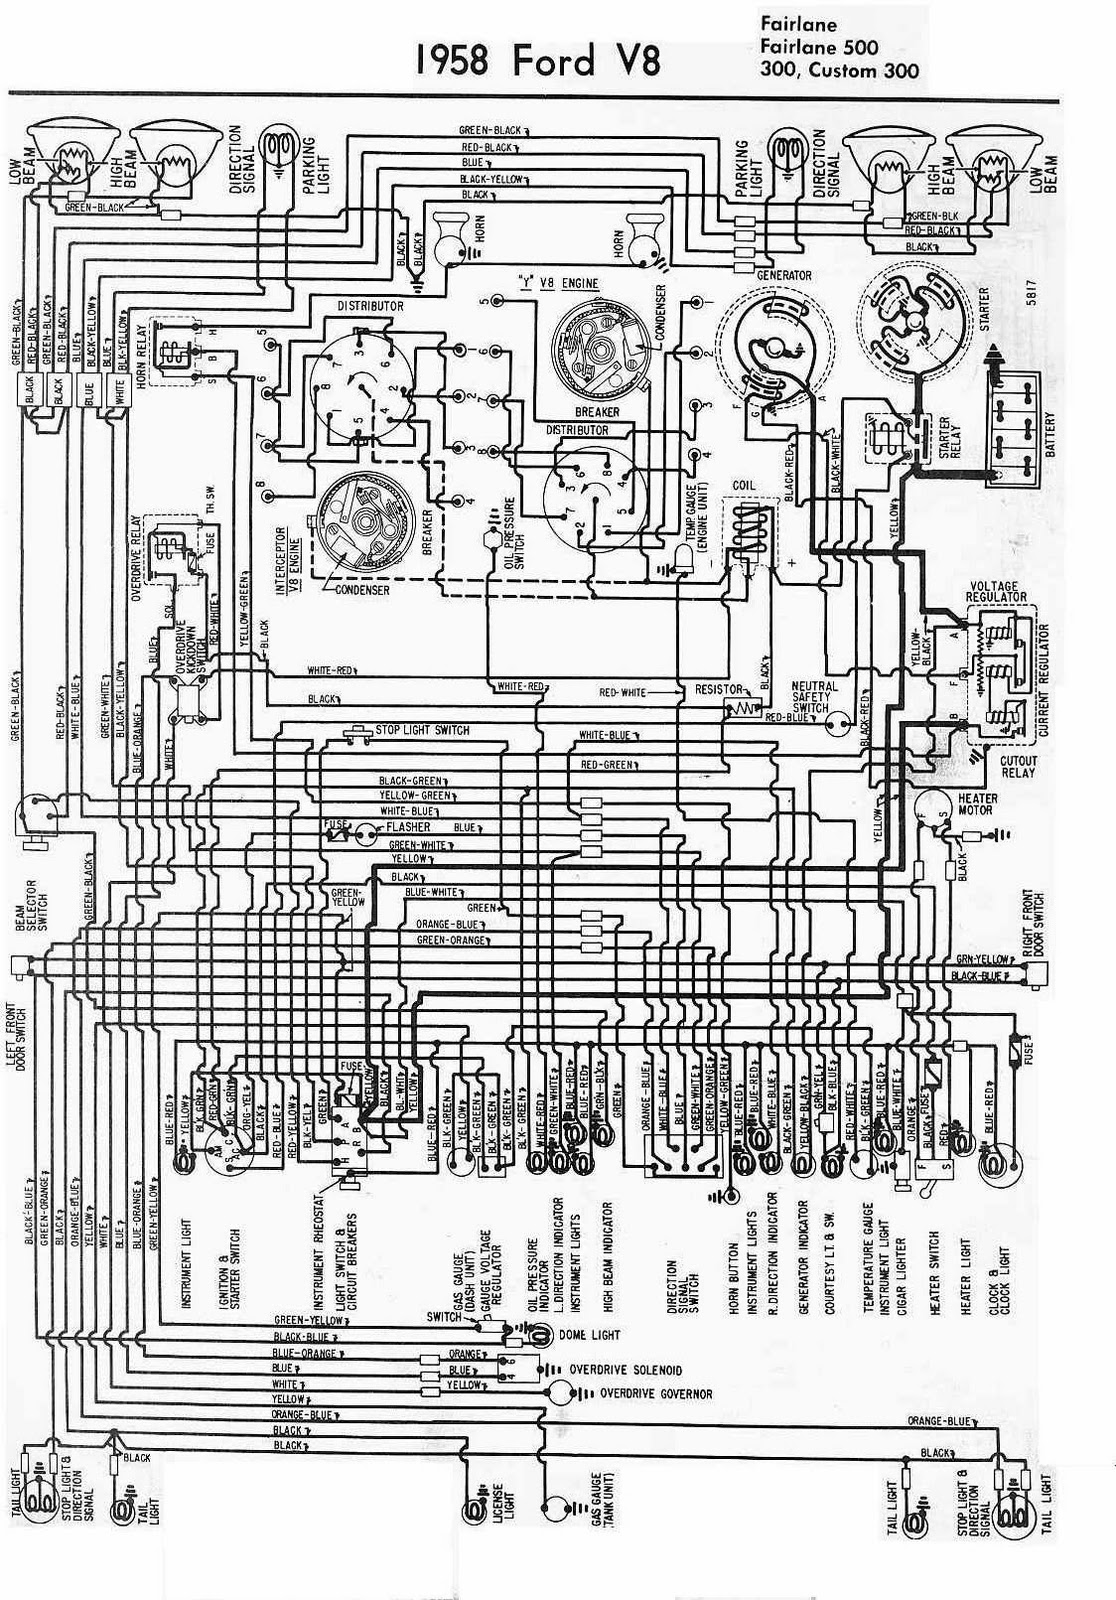 1955 Ford Thunderbird Wiring Diagram | Wiring Diagram Pontiac Gto Ignition Switch Wiring Diagram on pontiac grand prix wiring diagrams, 1968 gto wiring diagram, 1969 pontiac firebird wiring diagram,